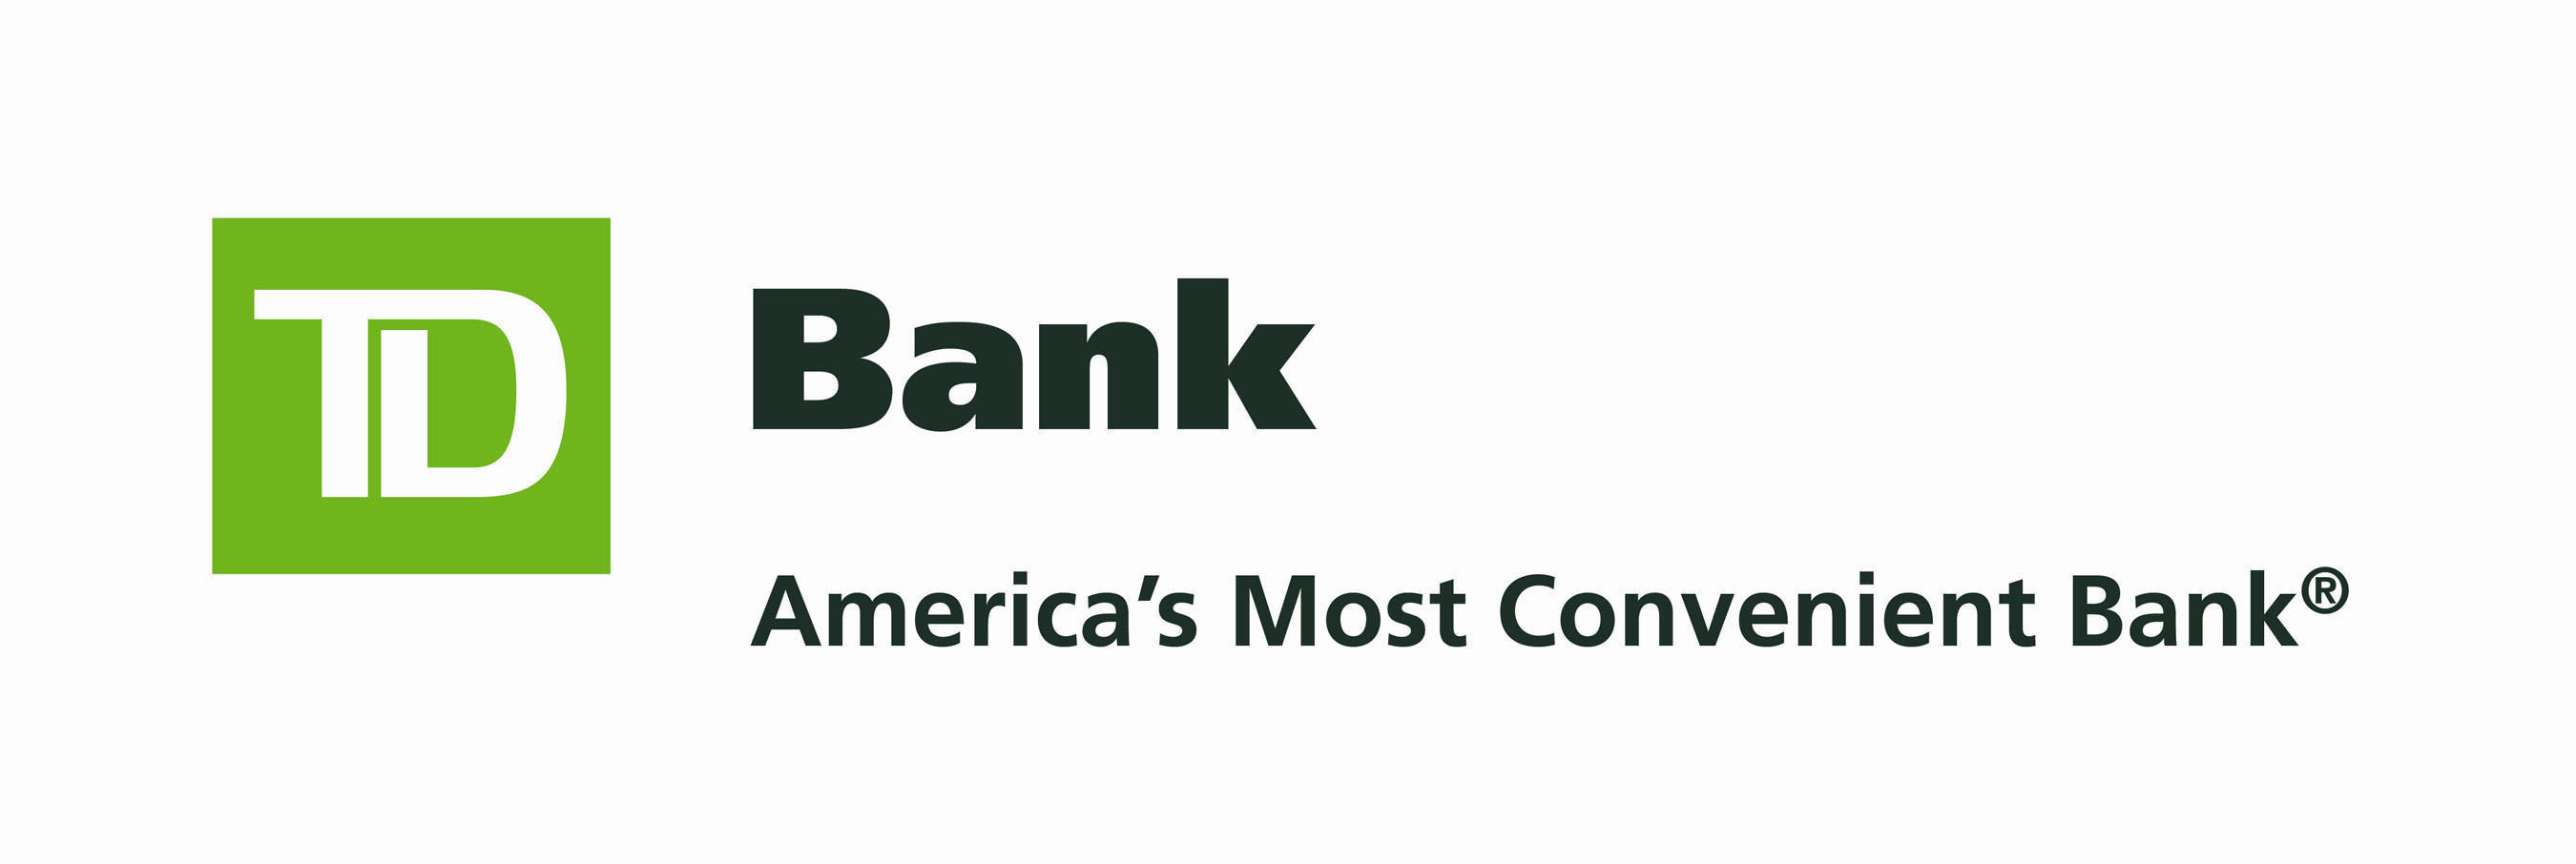 Td bank launches new cash rewards credit card td cash visa signature credit card americas most convenient bank colourmoves